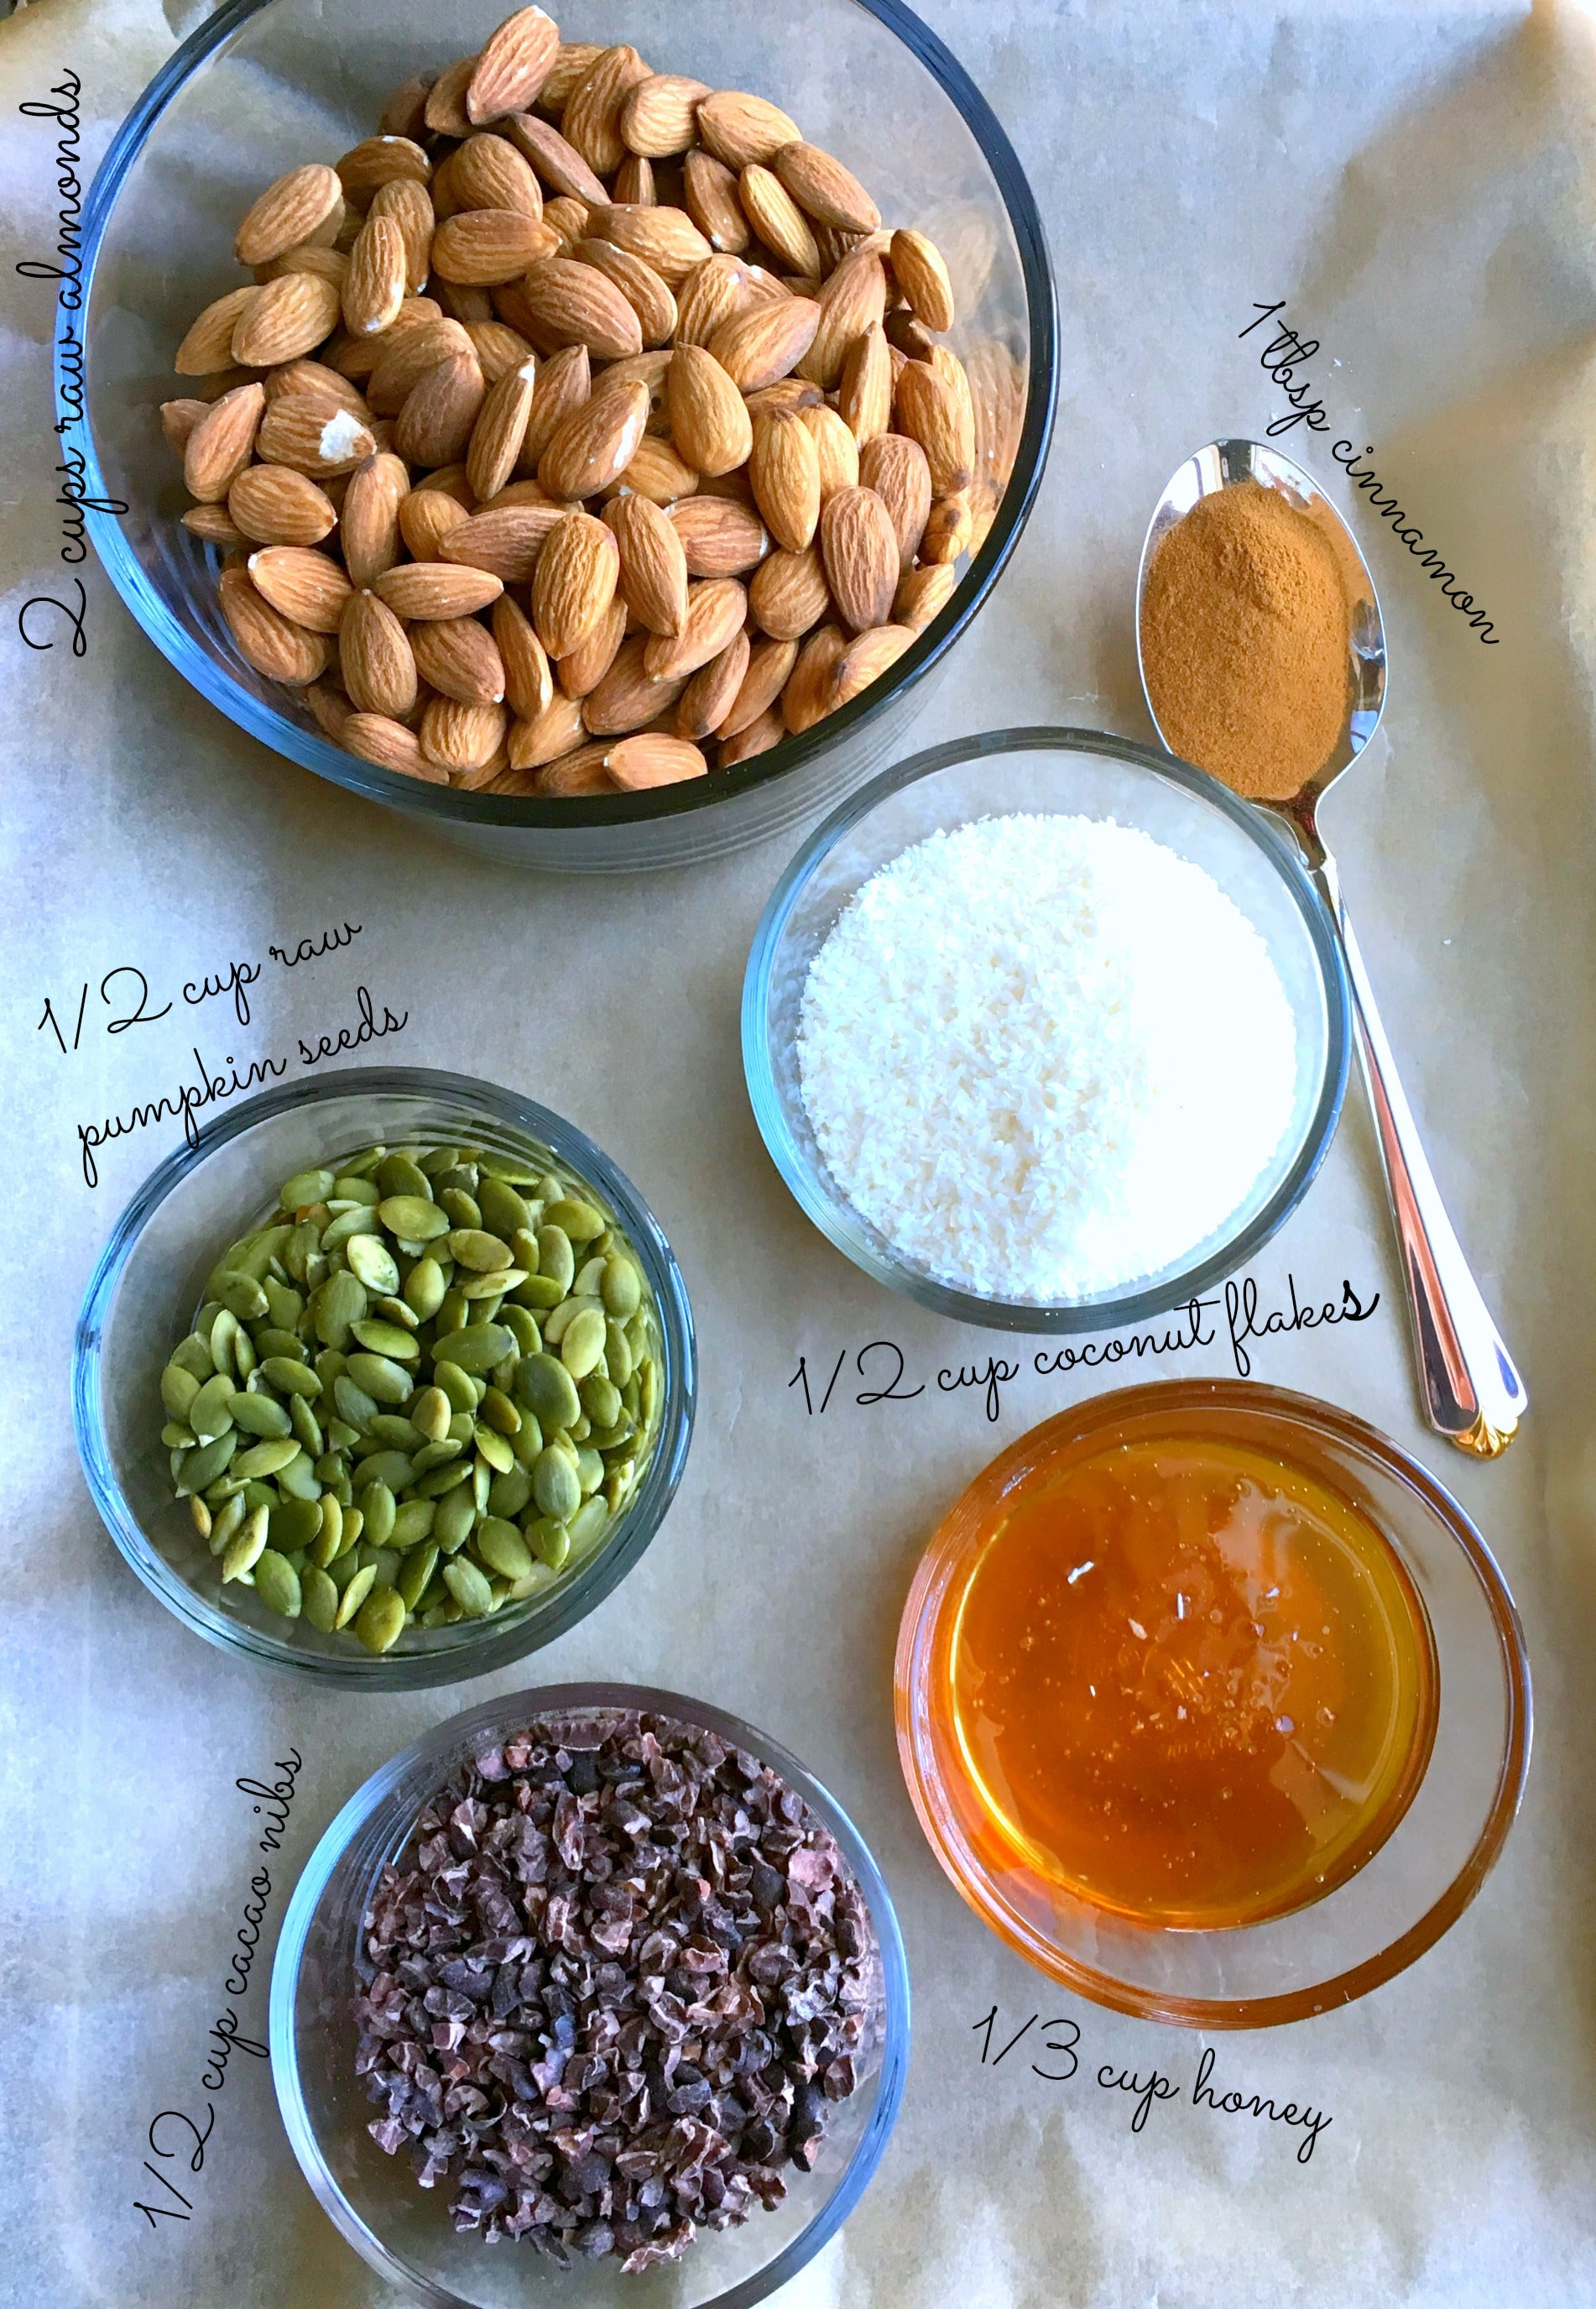 Nuts and seeds provide good amounts of protein, making them a healthy snack to eat or to complement a meal.